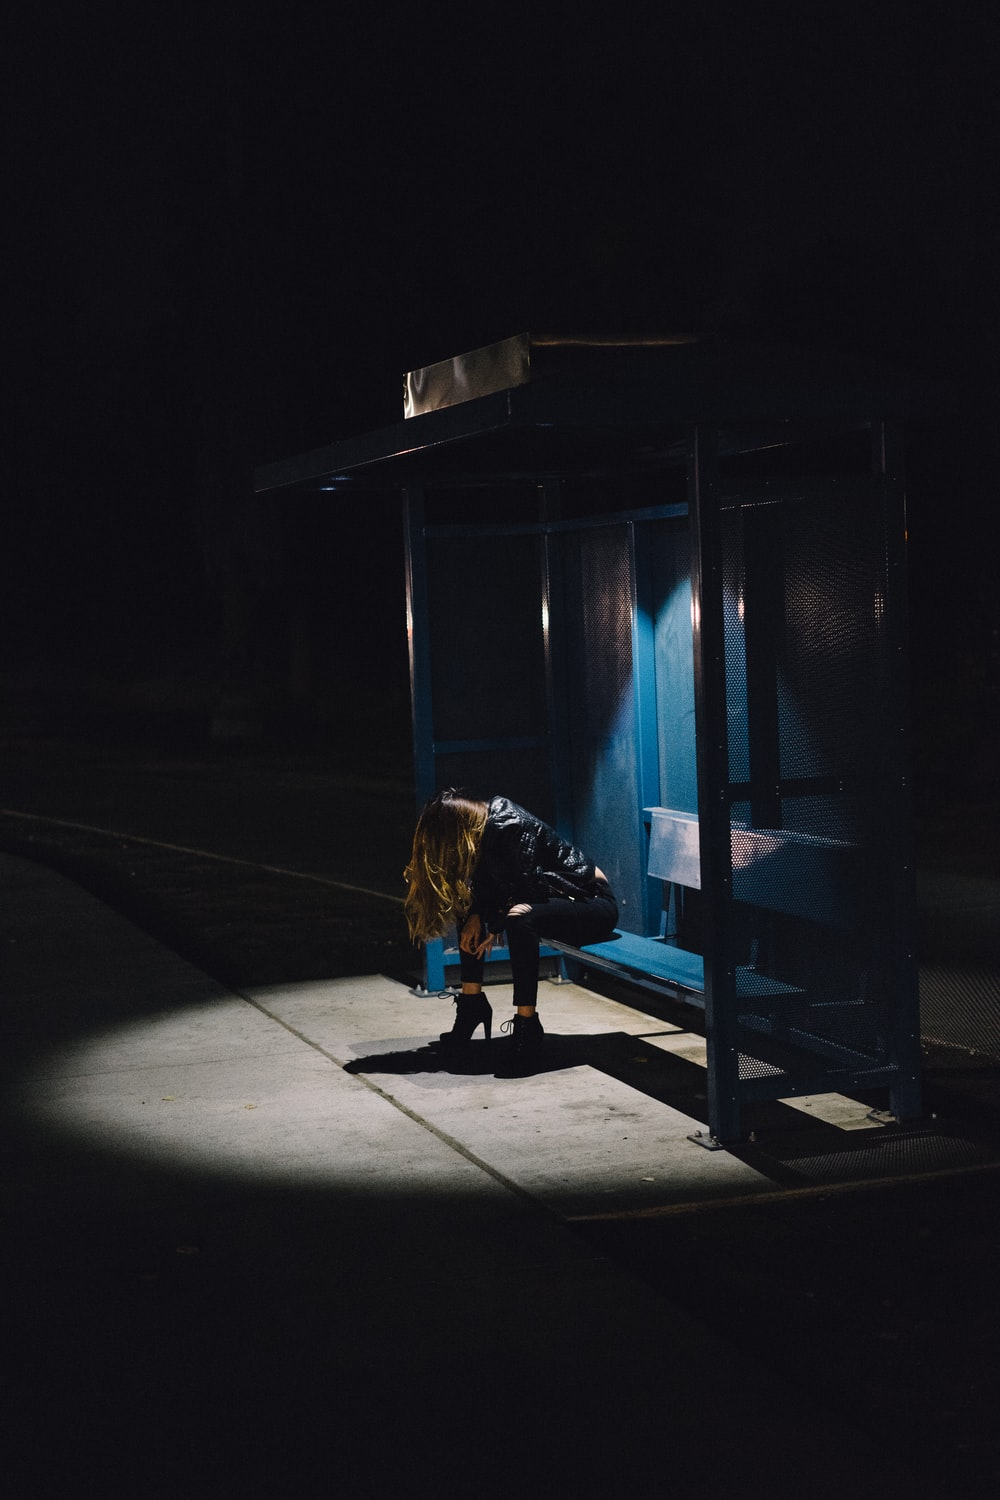 woman sitting on black weight bench during night time